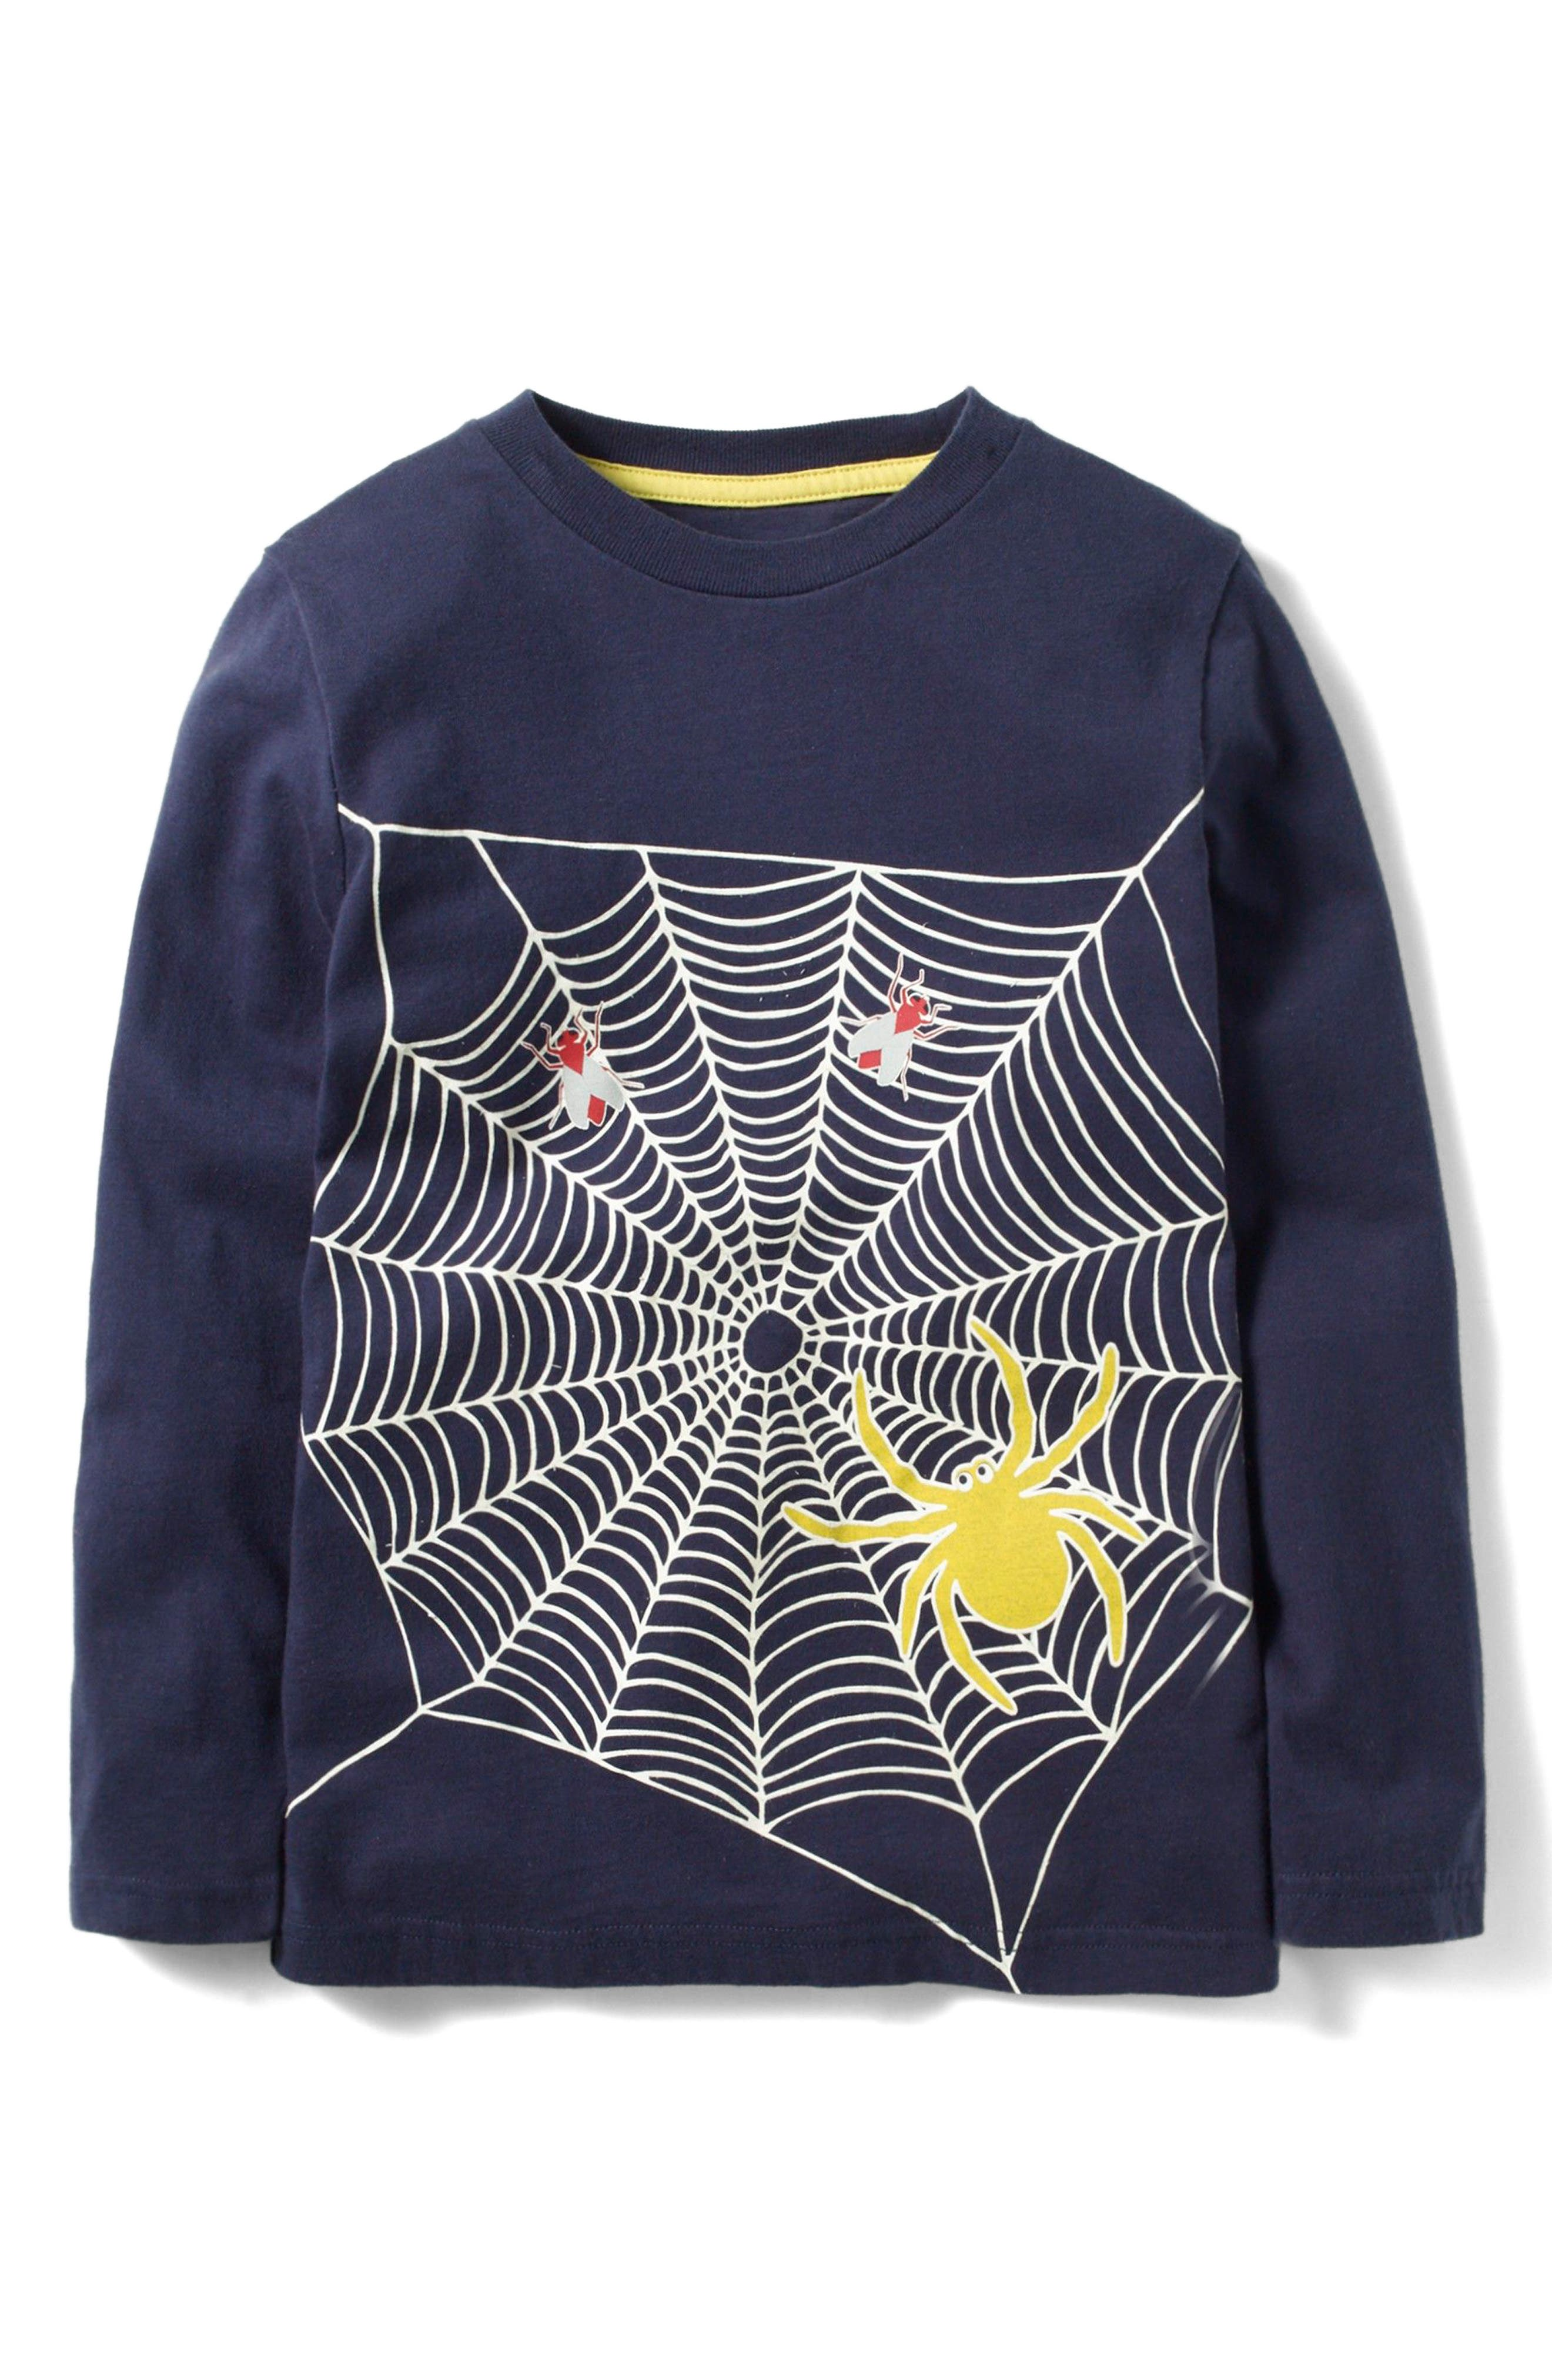 Spooky Glow T-Shirt,                         Main,                         color, Navy Spider